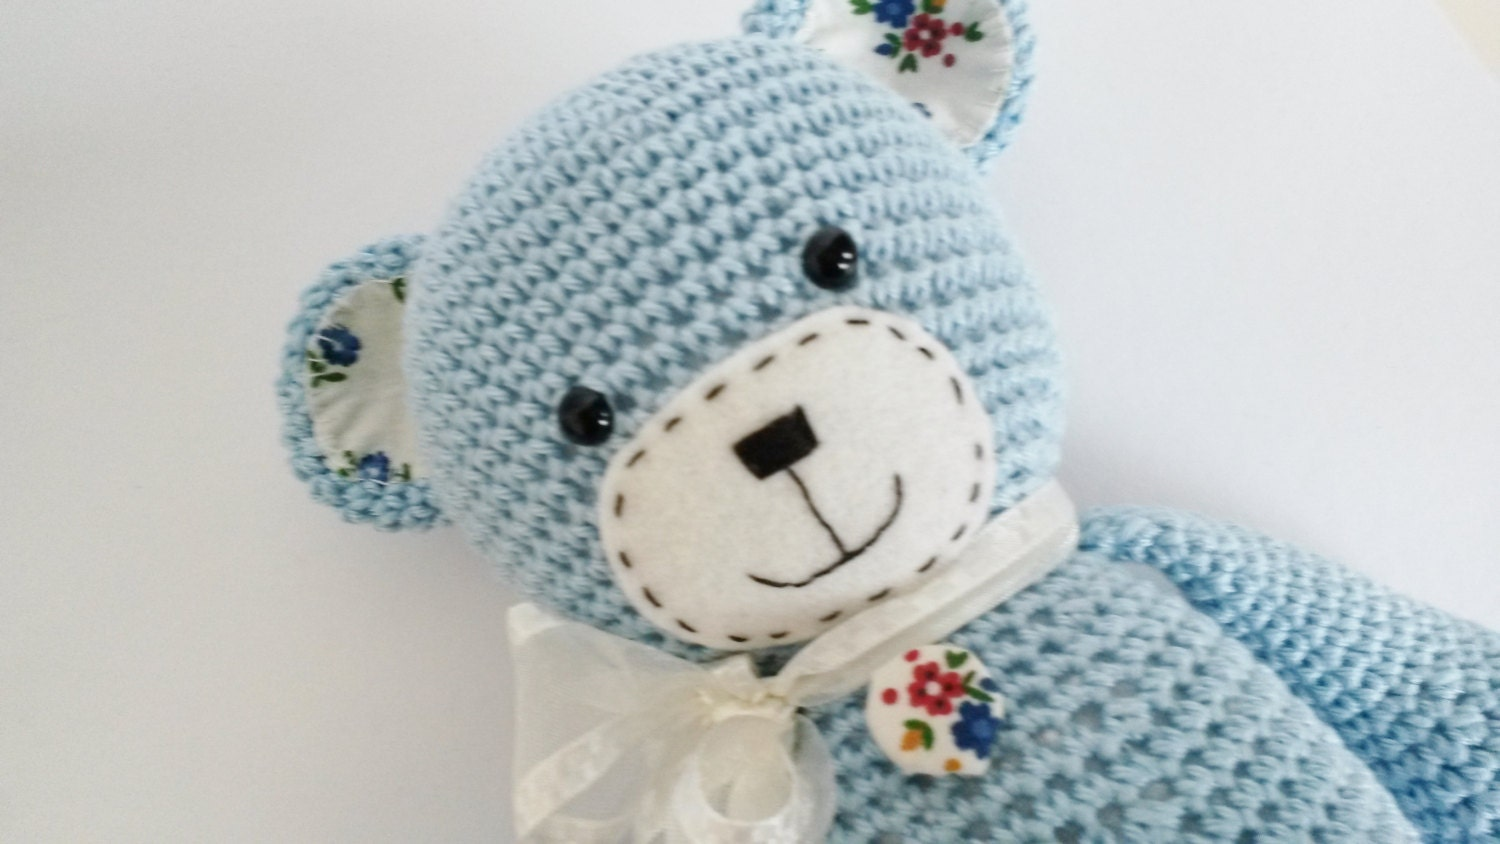 Amigurumi Teddy Bear Free Patterns : Amigurumi free patterns teddy bear: little muggles free pattern